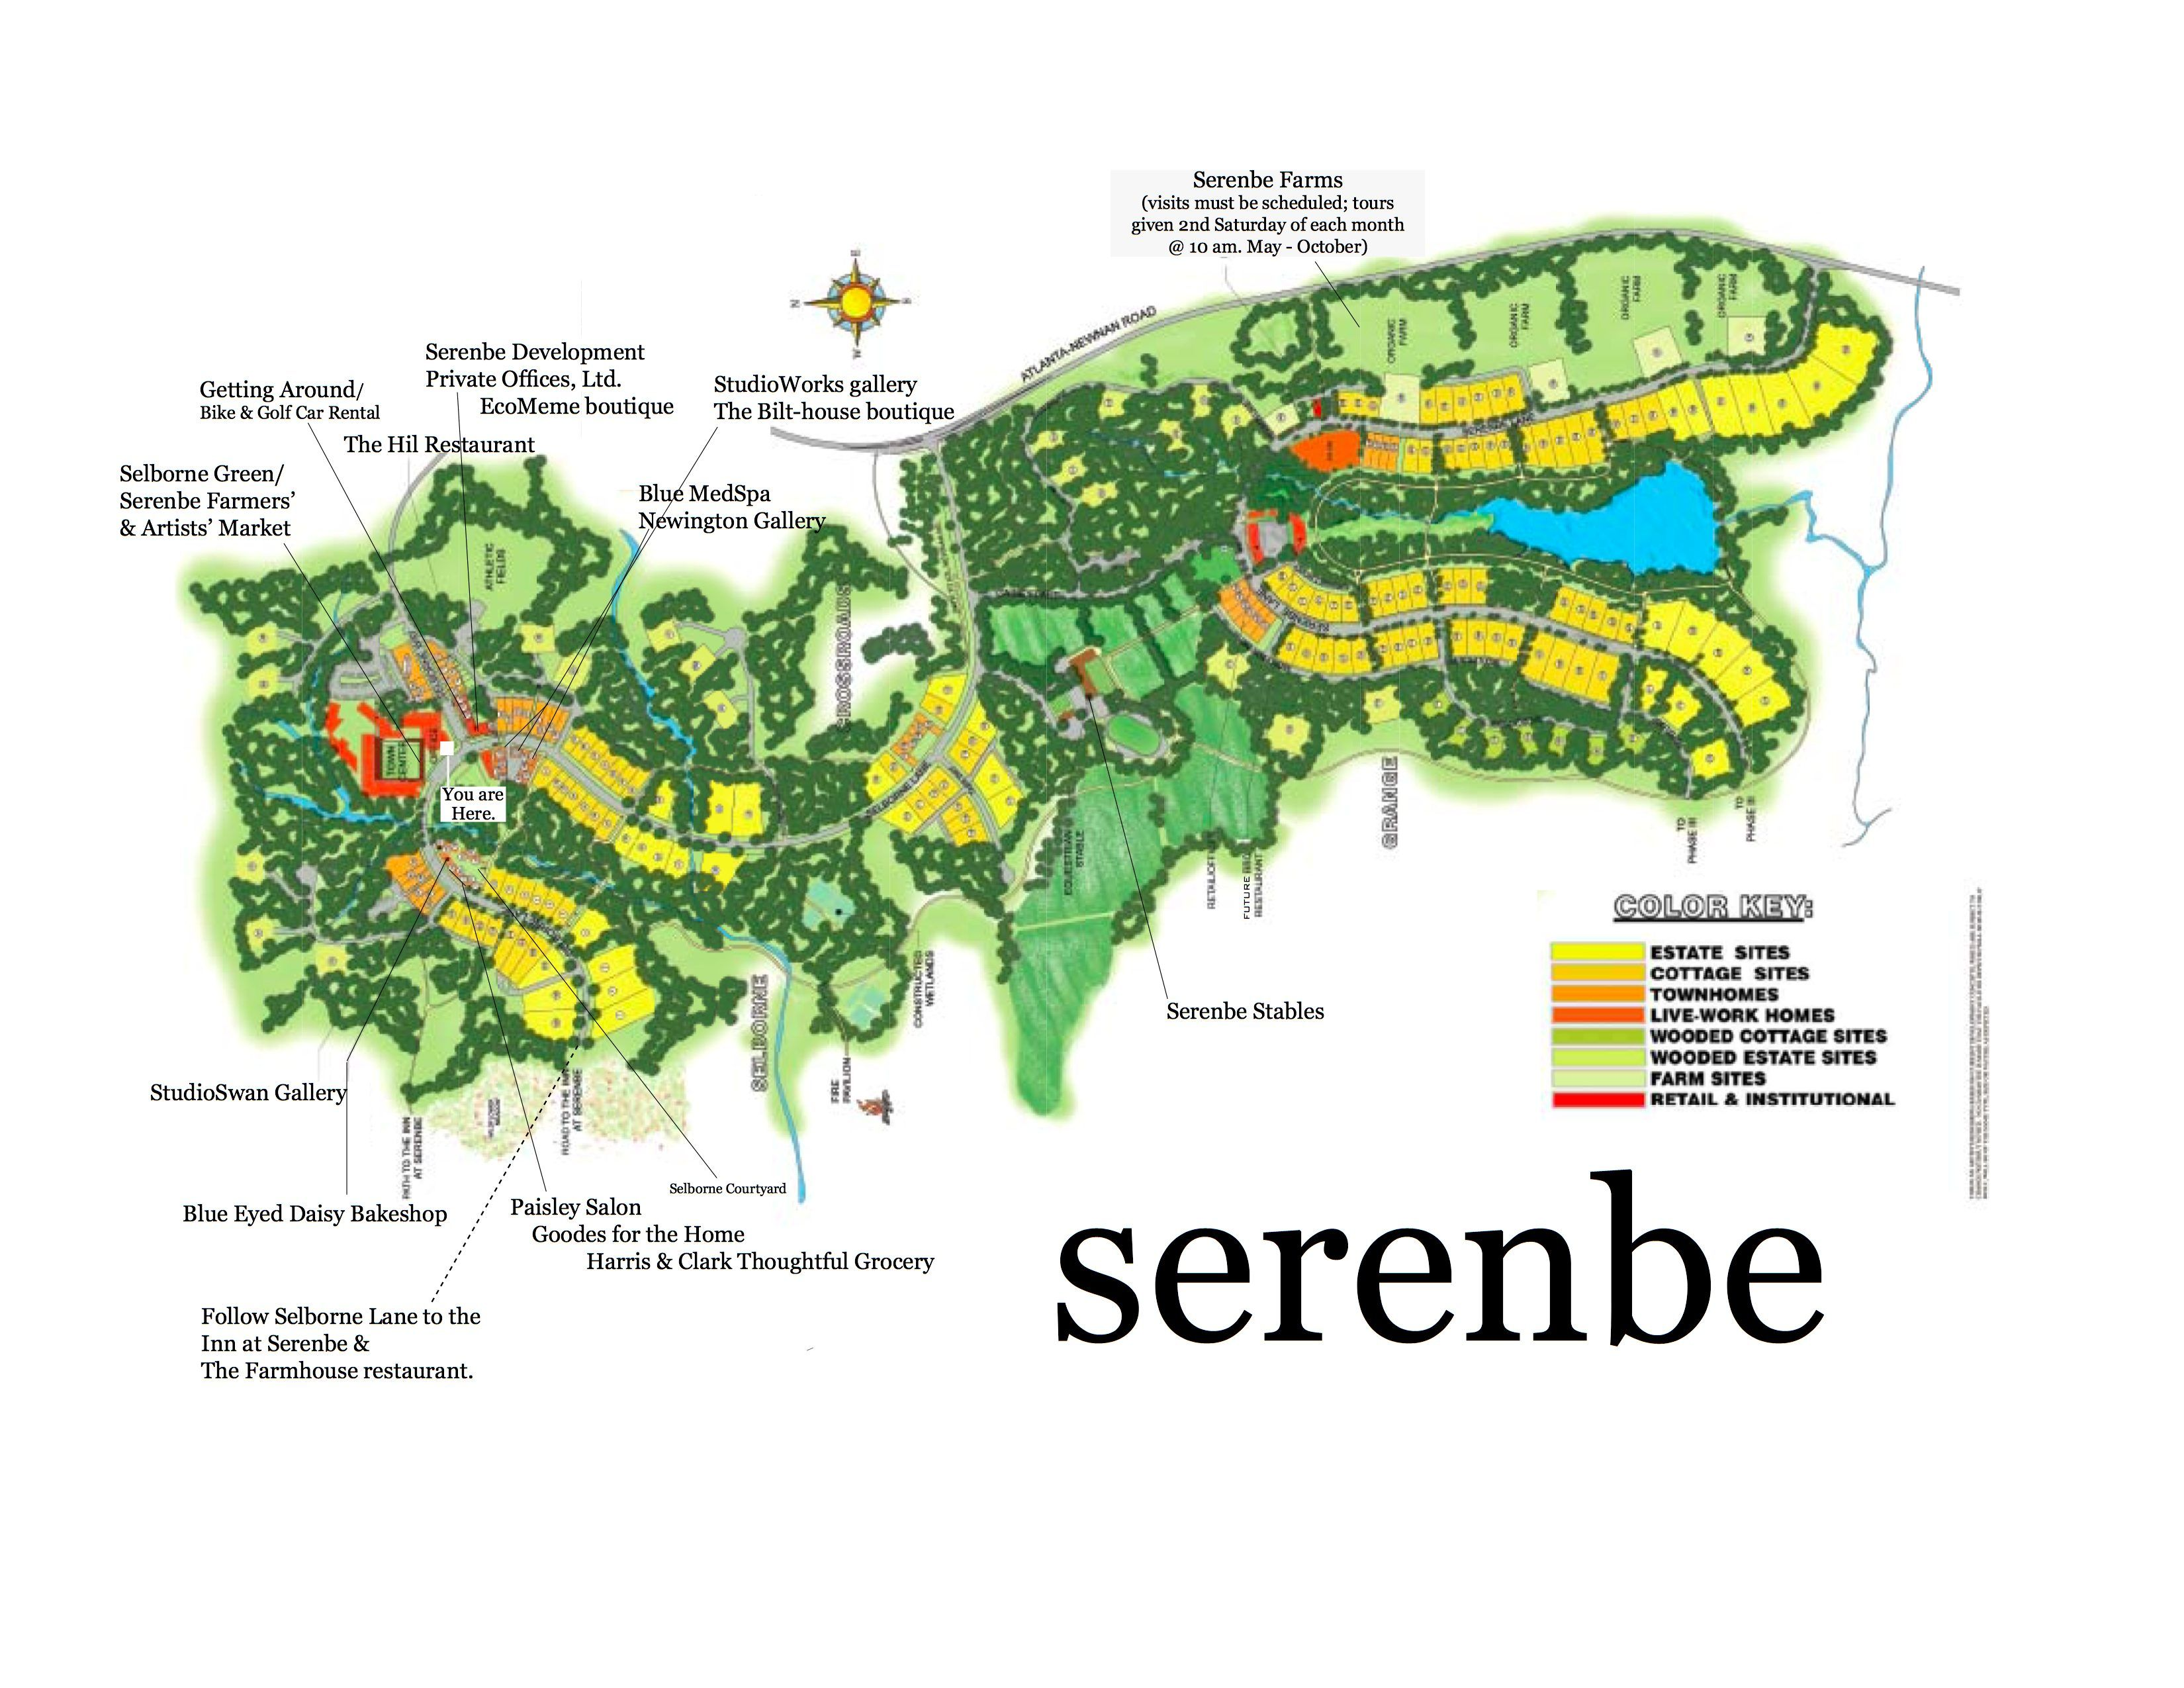 A Third Town Center Will Be Created In A Future Phase Of Serenbe